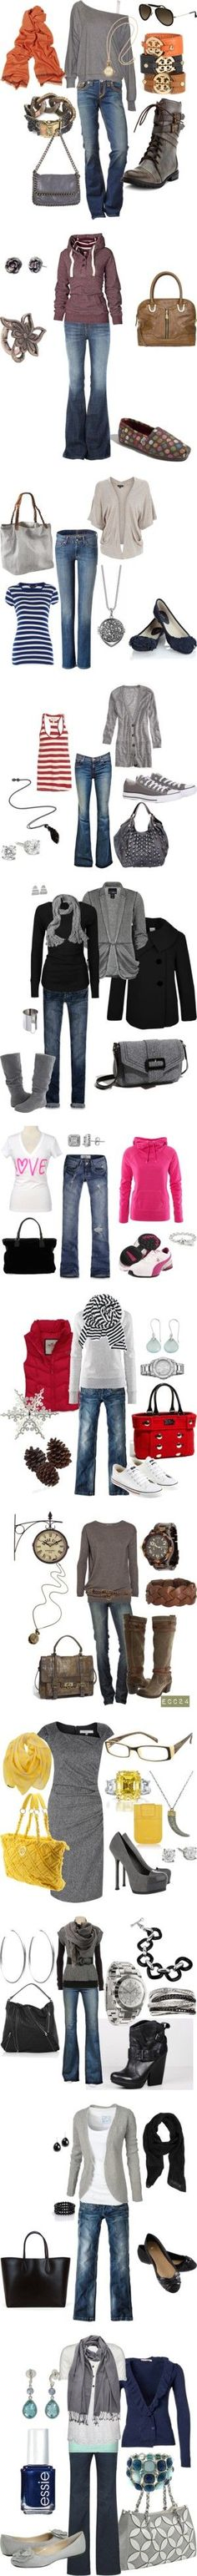 A fine wardrobe of jeans and occasional dressier outfits...lots of ideas!  KEY IS ACCESSORIES